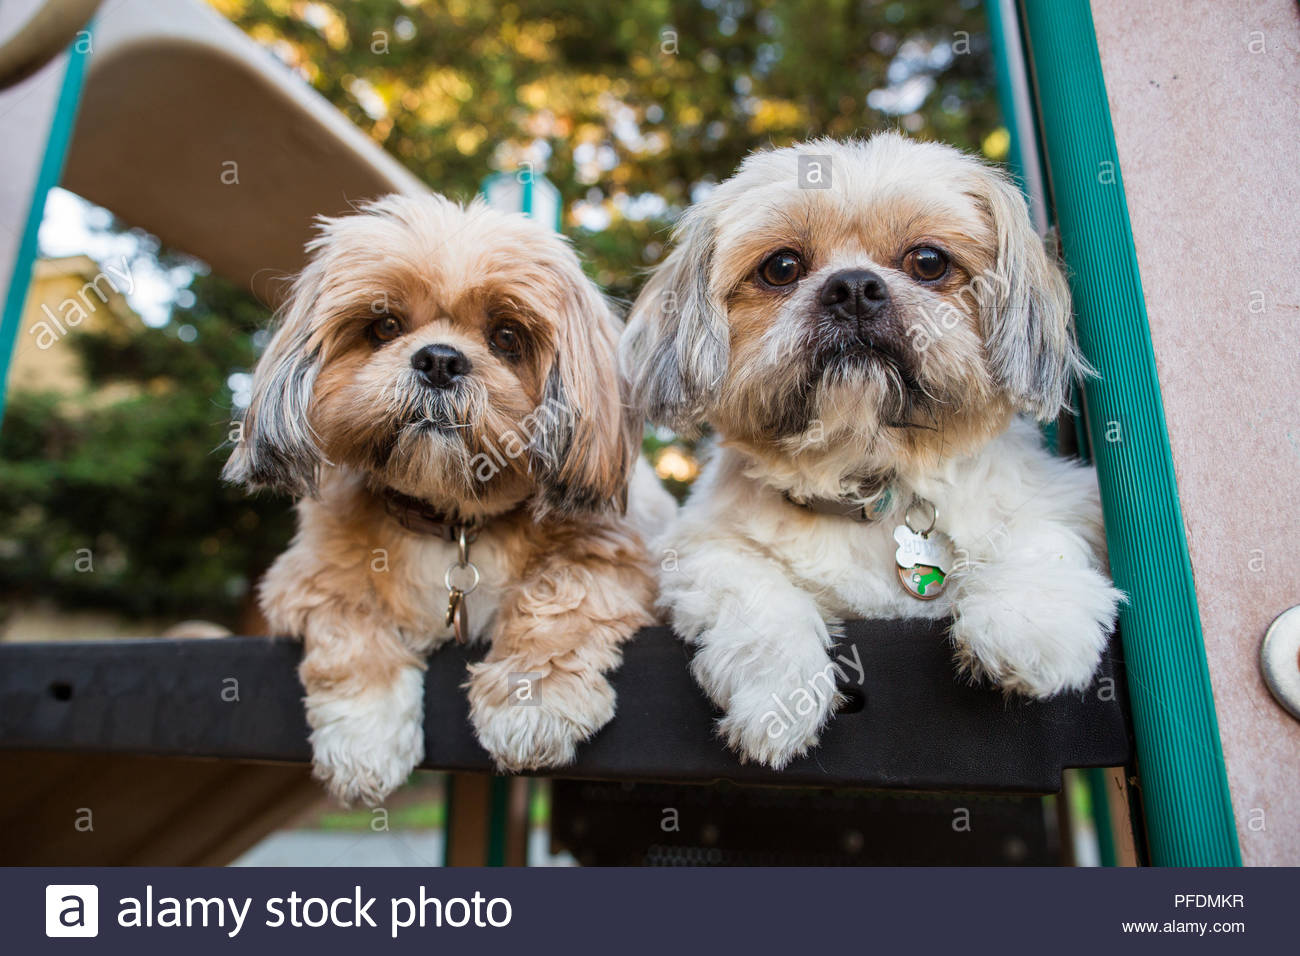 Two Alert Shih Tzu Dogs Laying Down On Child Play Set Looking Out